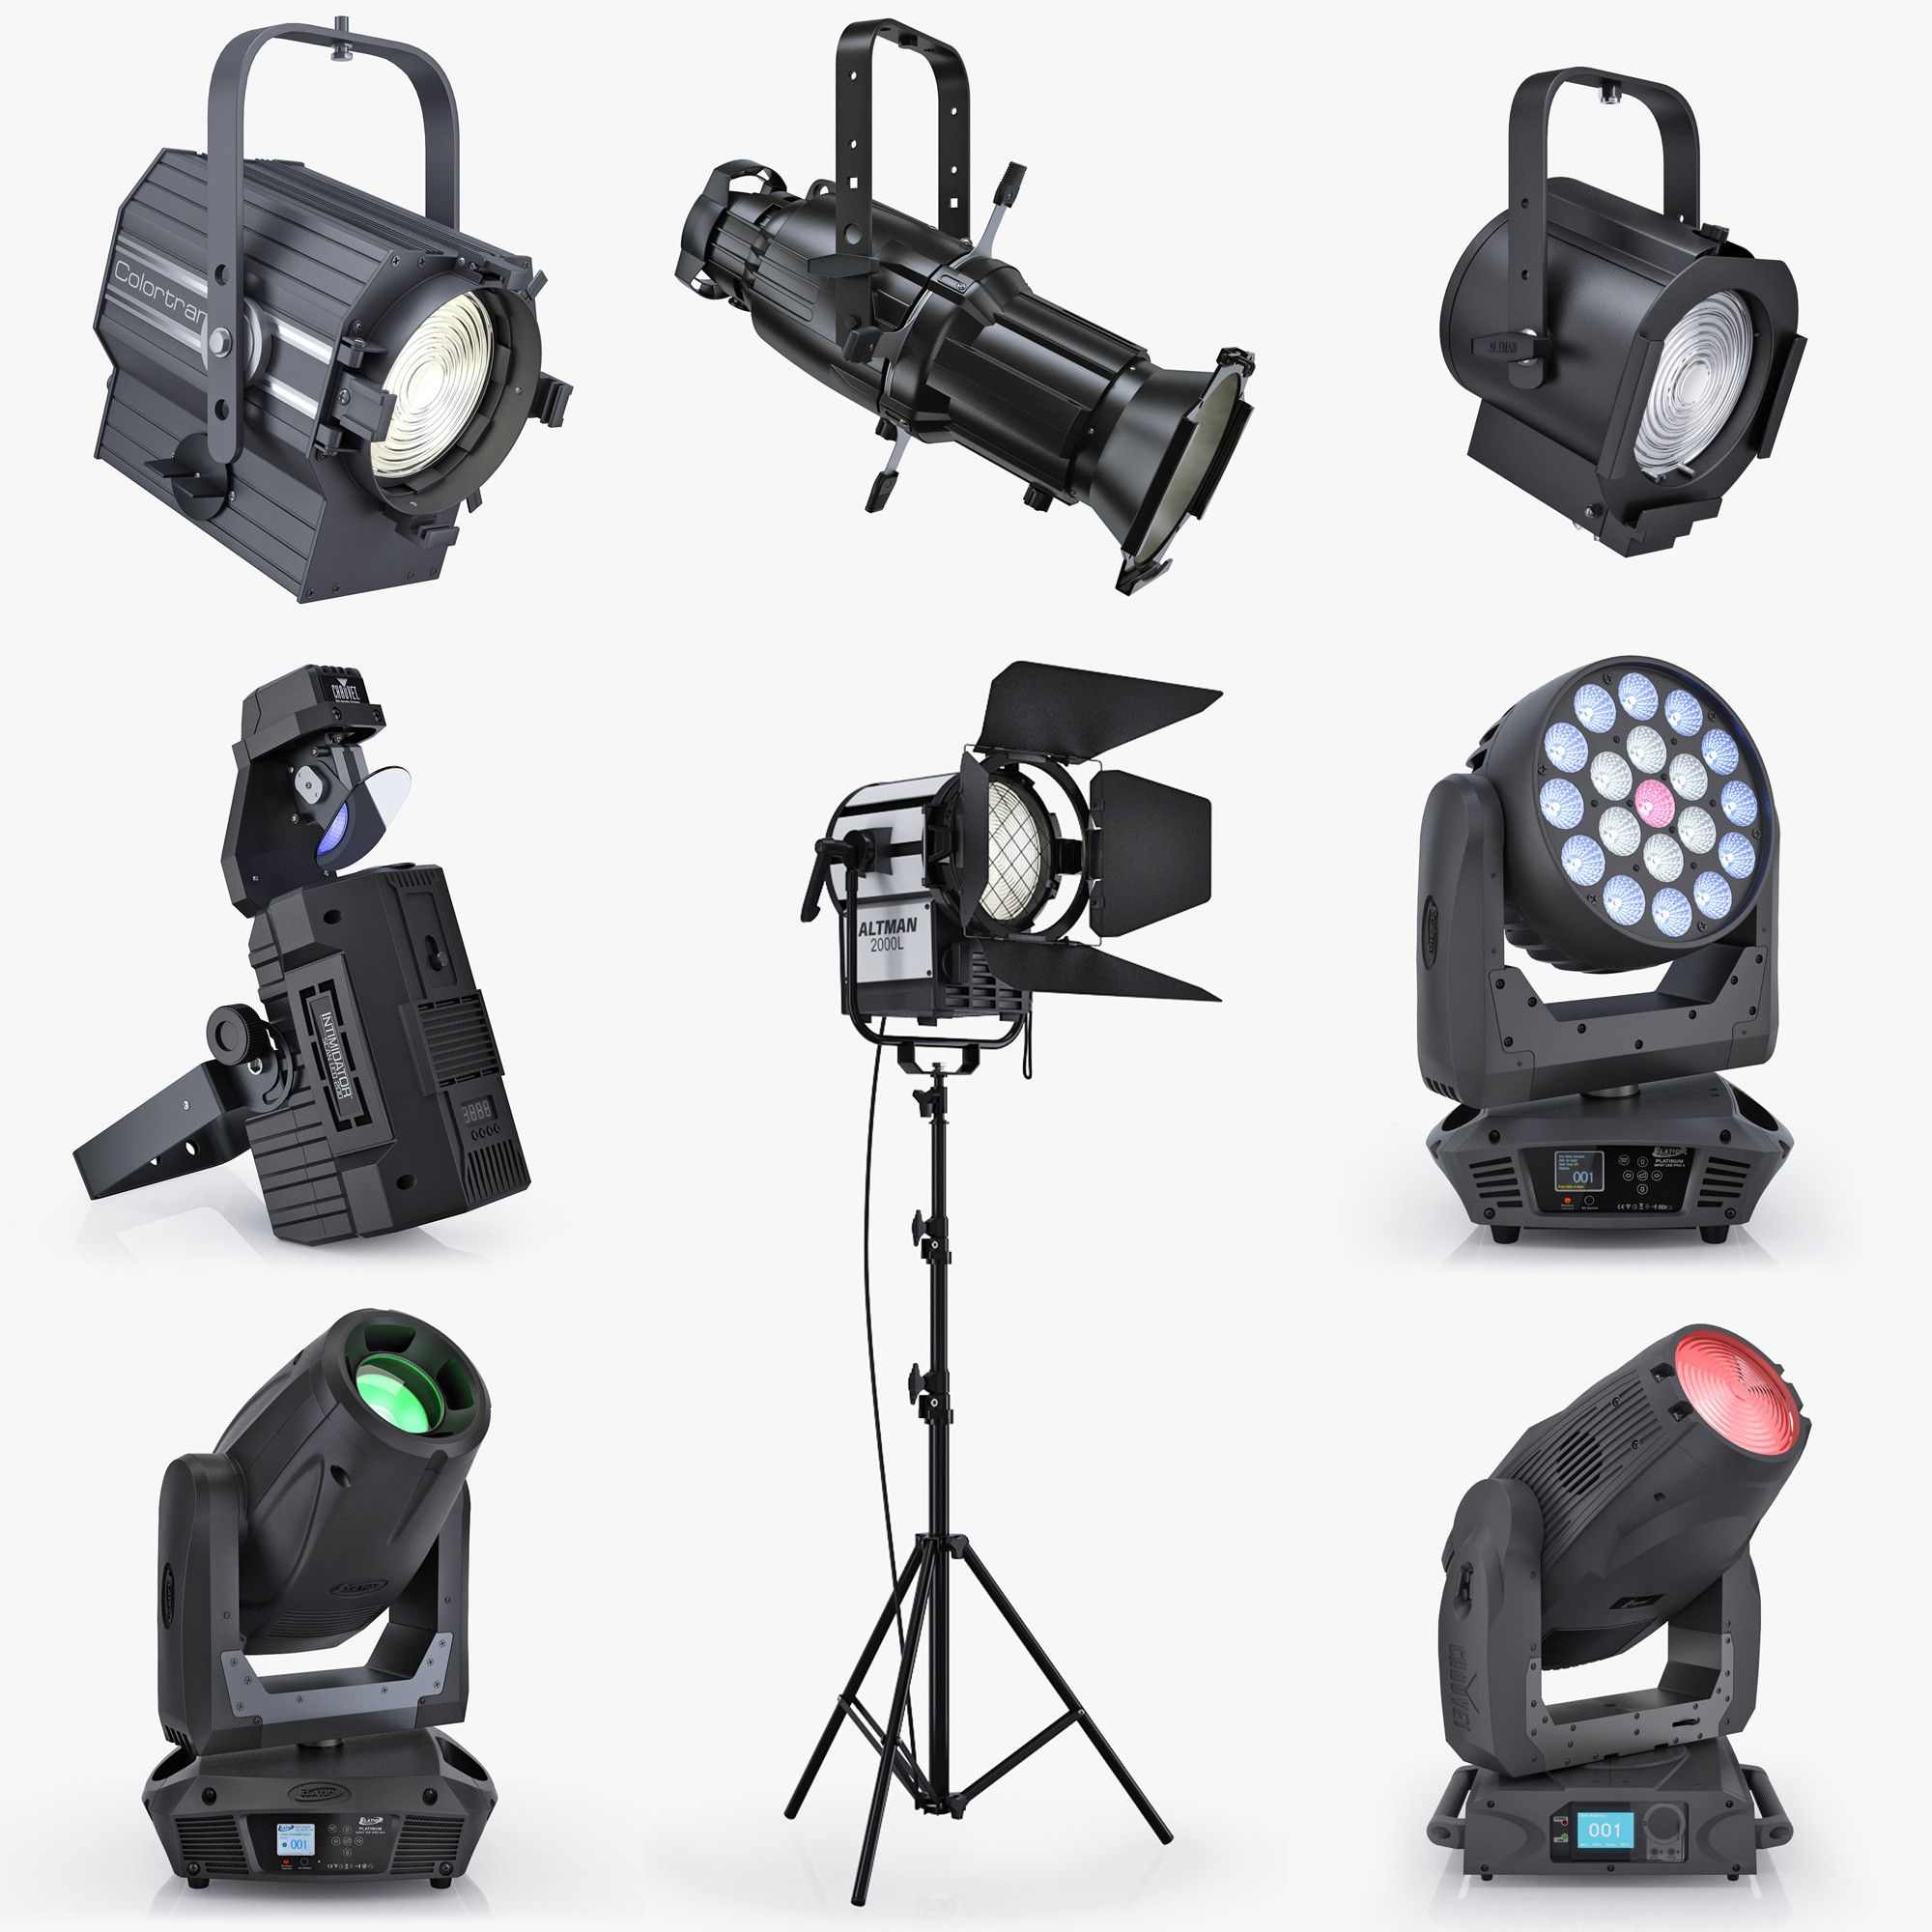 3D Stage Lights Turbo Squid | Blue Social Media Piece | Pinterest ... for Photography Lighting Equipment Names  153tgx